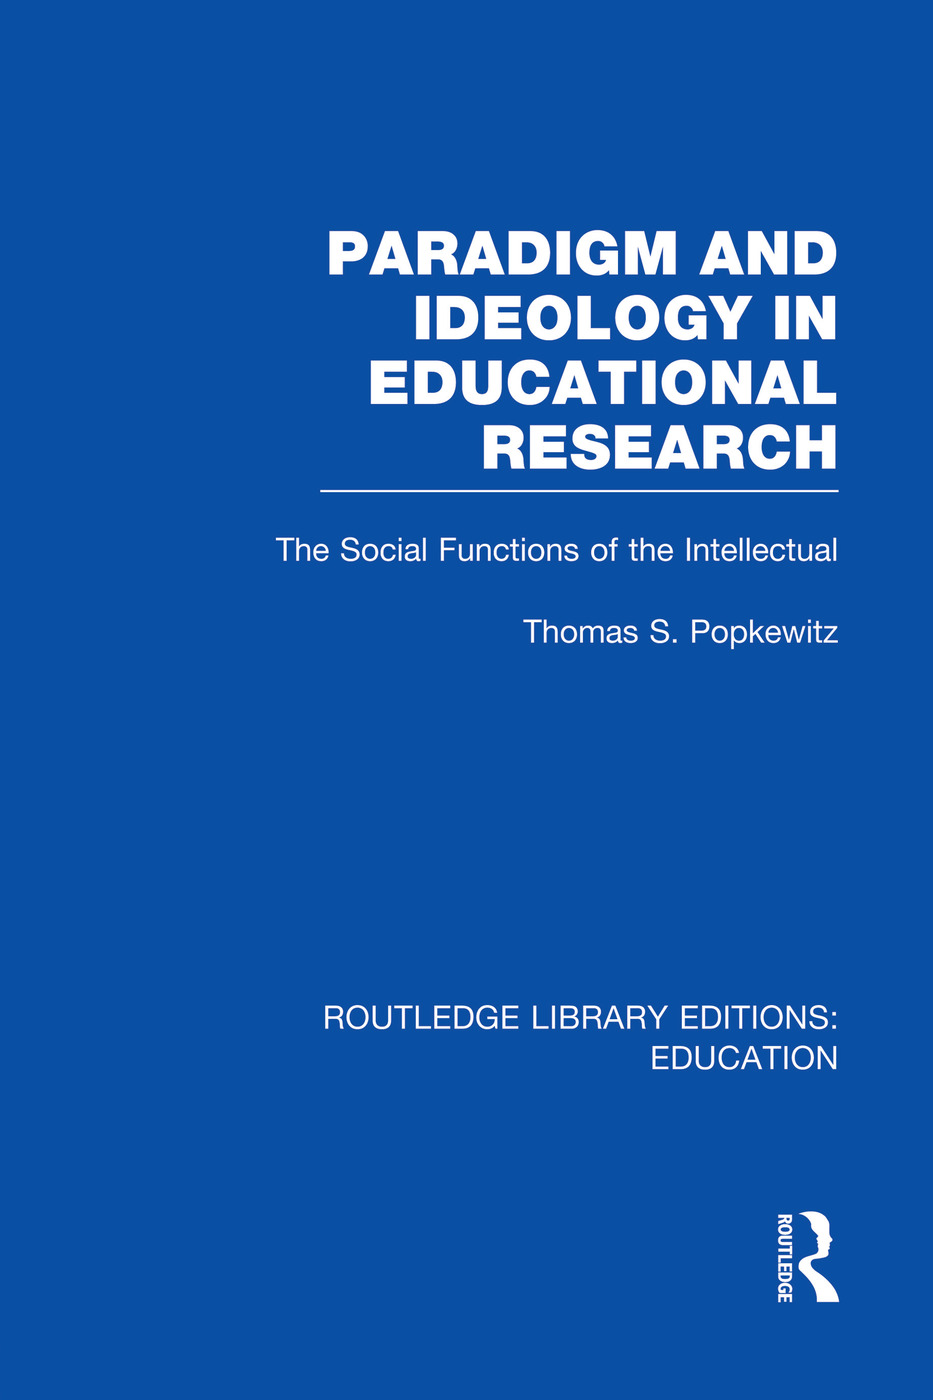 Paradigm and Ideology in Educational Research (RLE Edu L): The Social Functions of the Intellectual, 1st Edition (Paperback) book cover